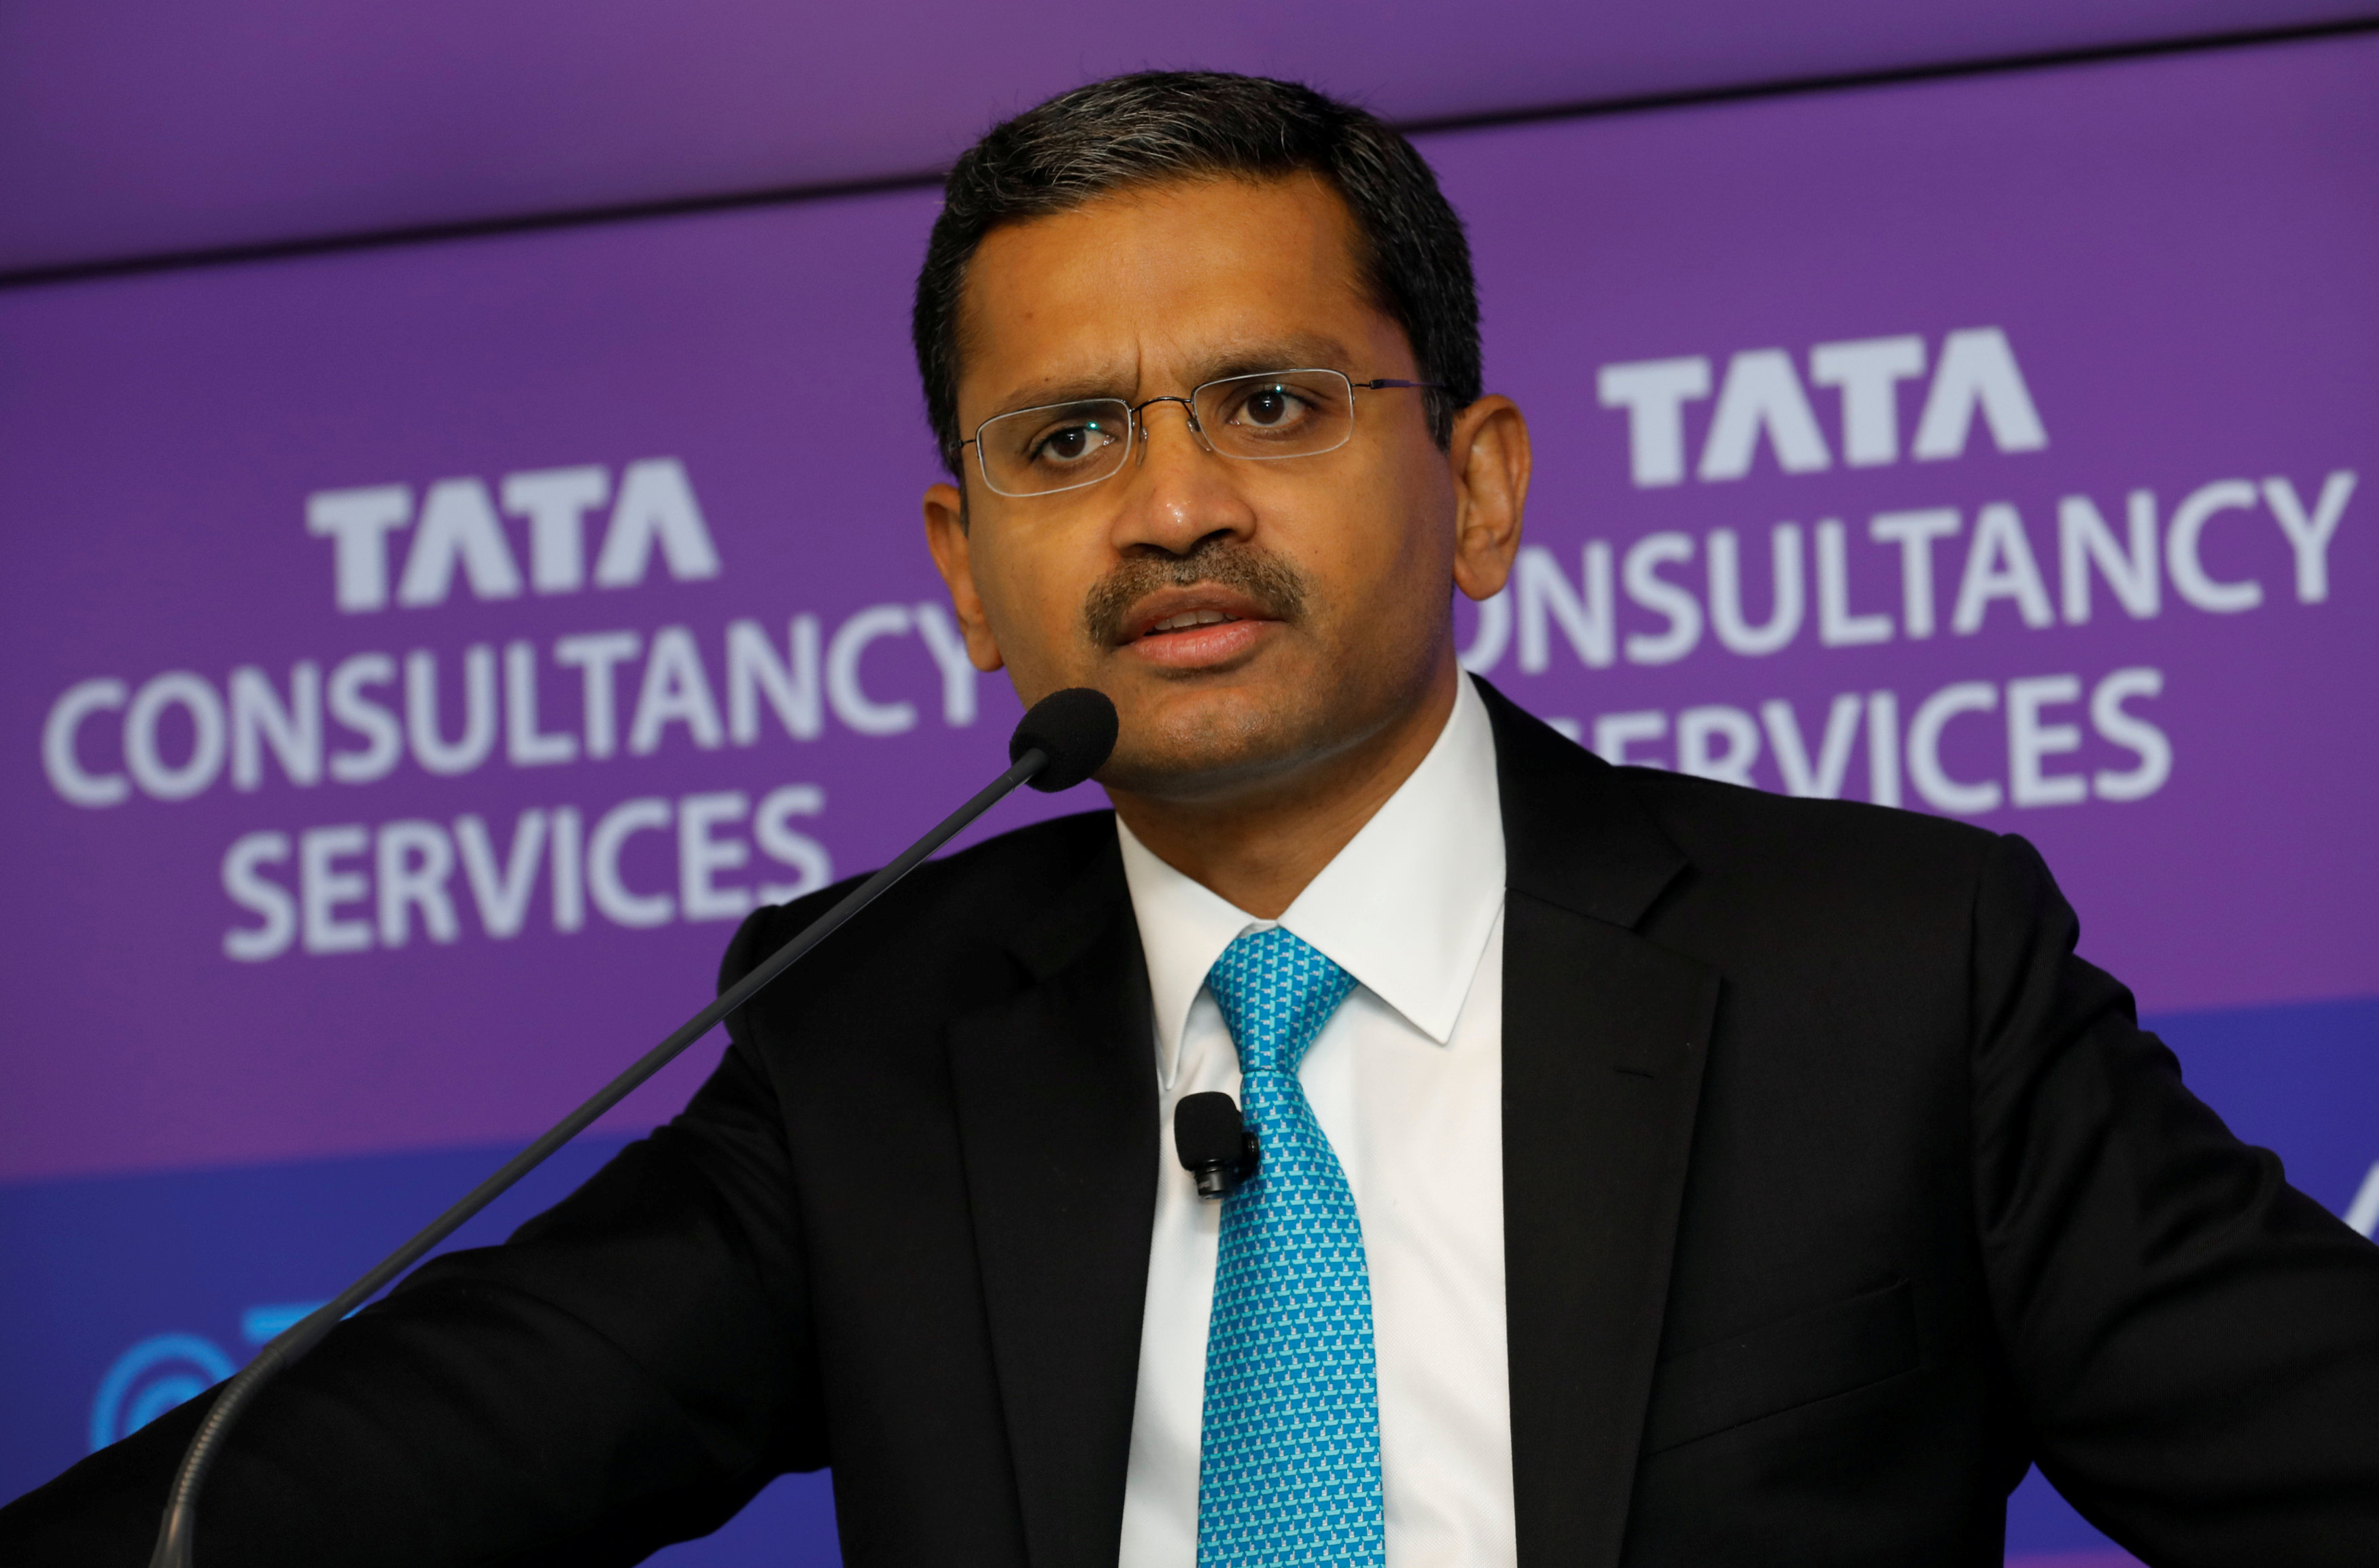 TCS Q2 Results Highlights: Tata Consultancy Services kicks off earnings season, net profit up 6.8% QoQ at Rs 9,624 crore, revenue up 3.2%